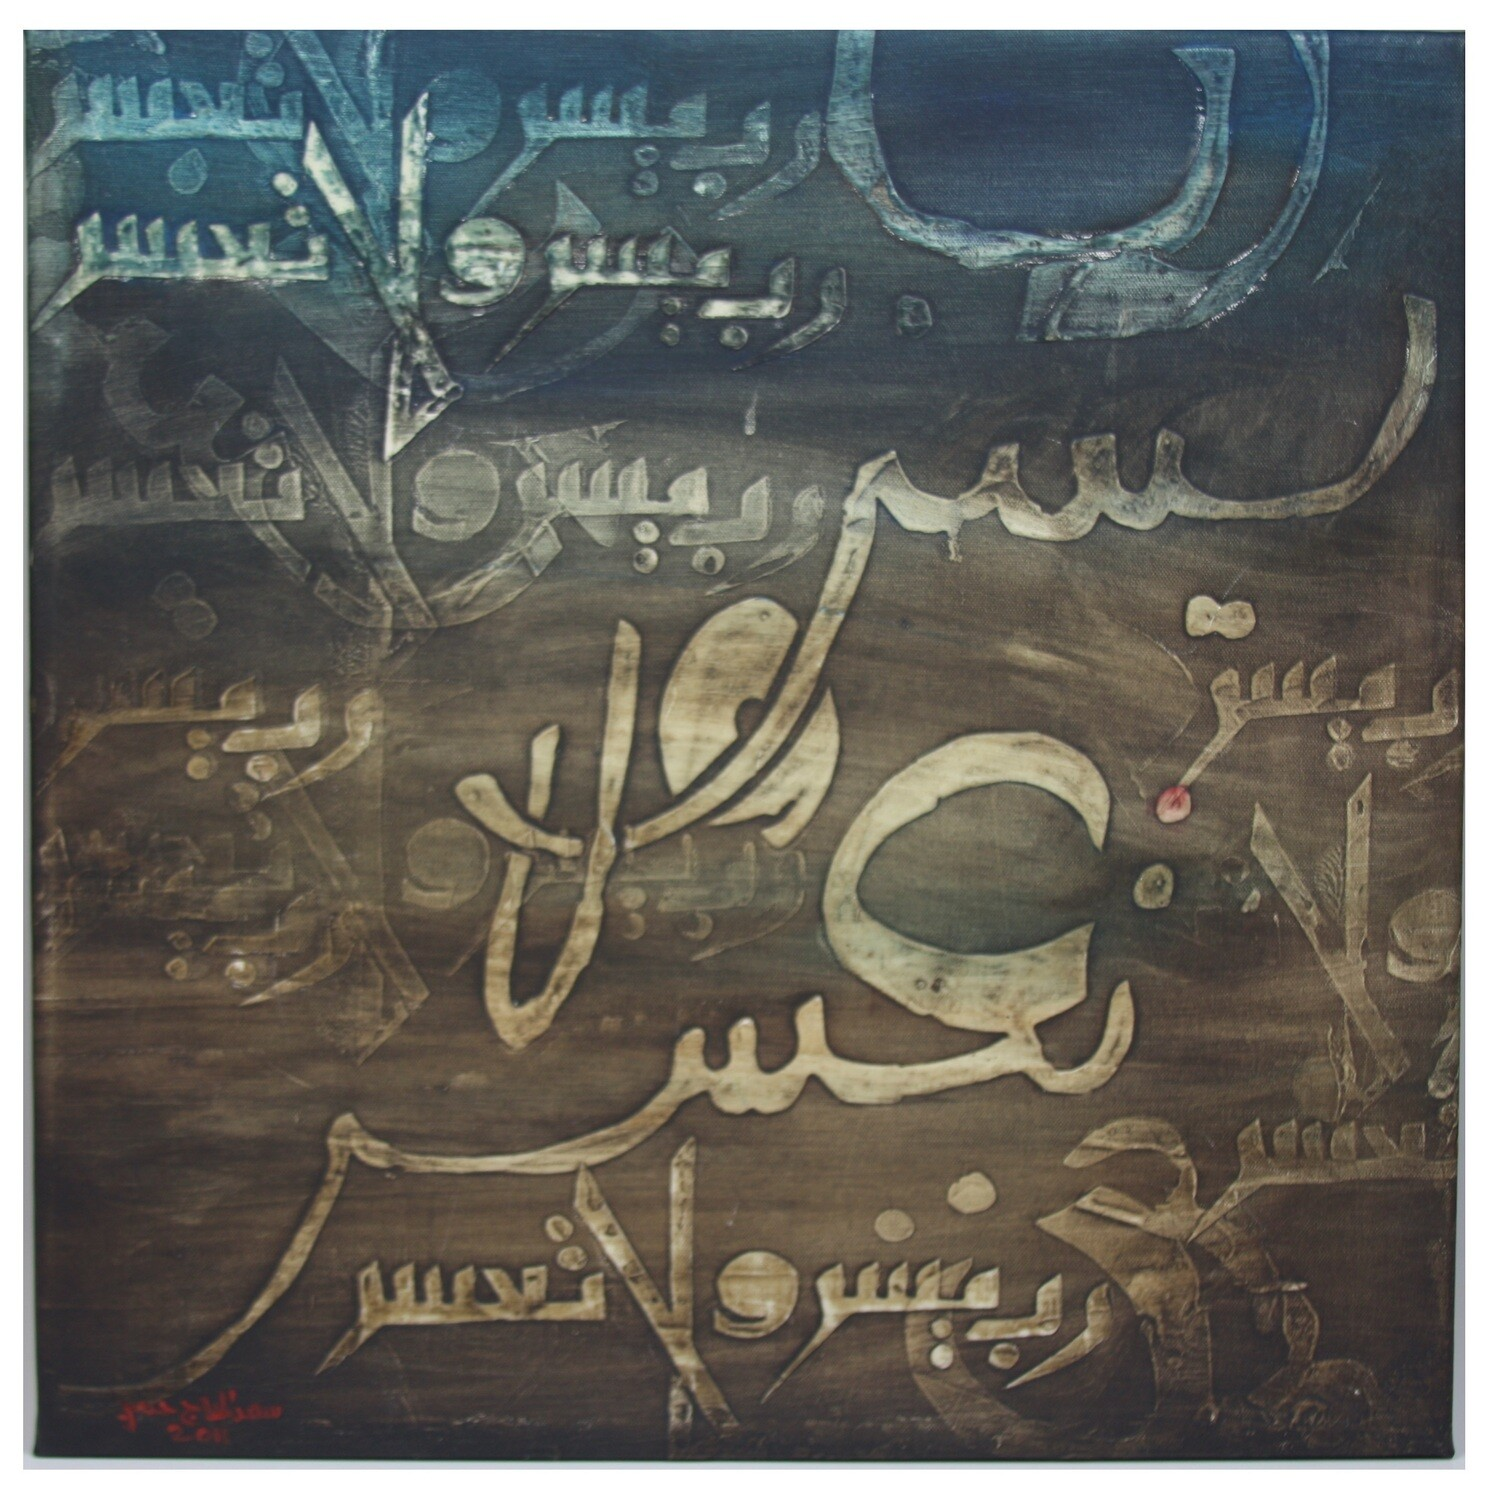 Hadith Make easy & do not make difficult Brown & Green Textured Multi-Media Hand painted Canvas